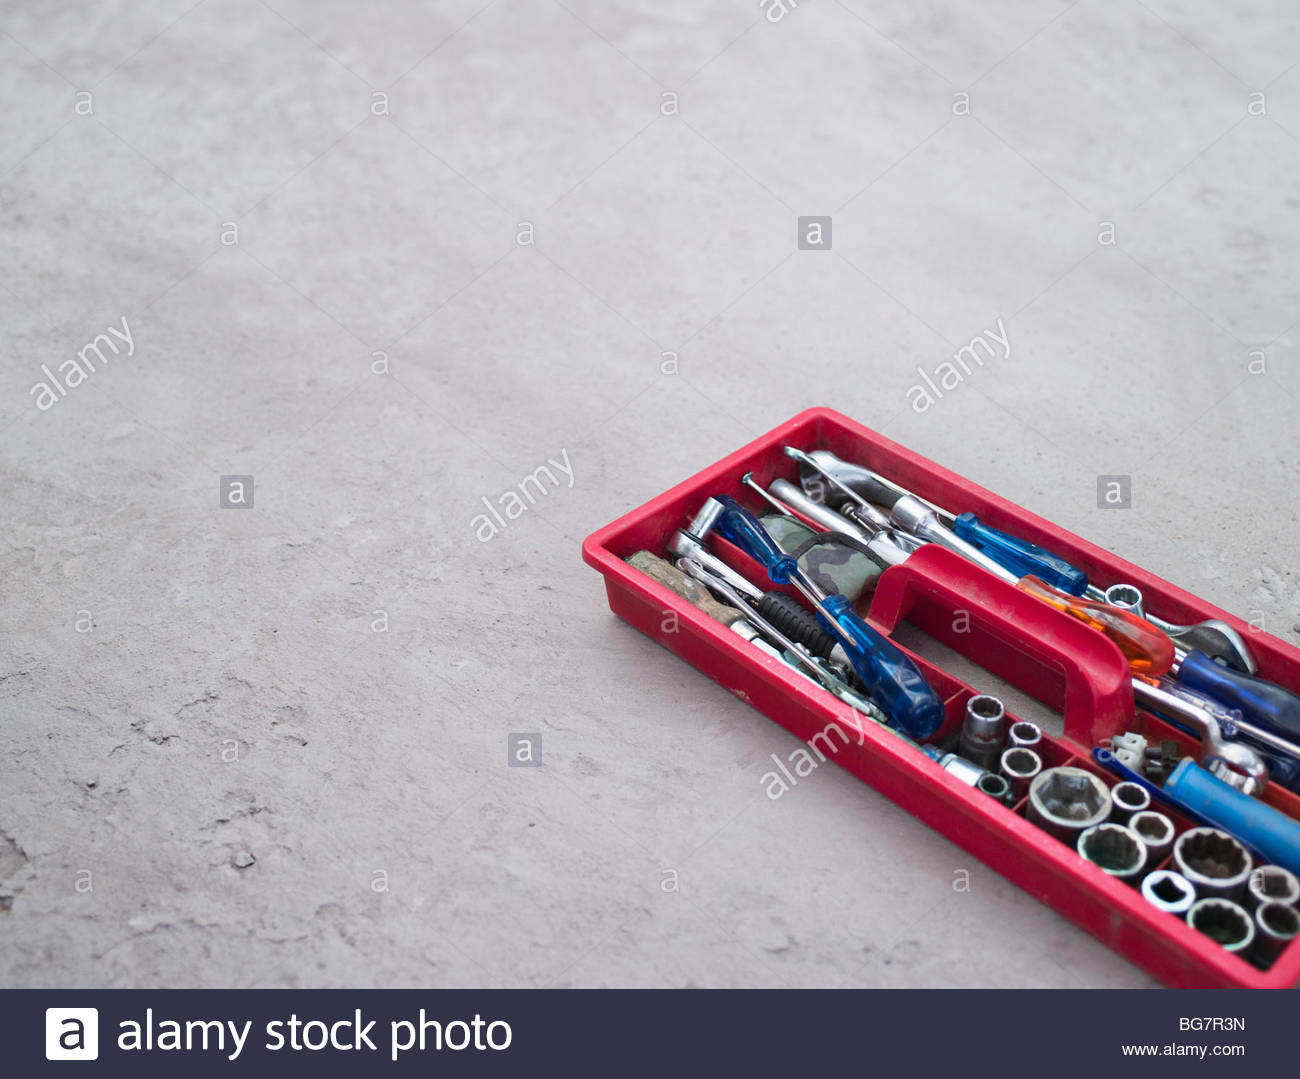 Tools in tray - Stock Image